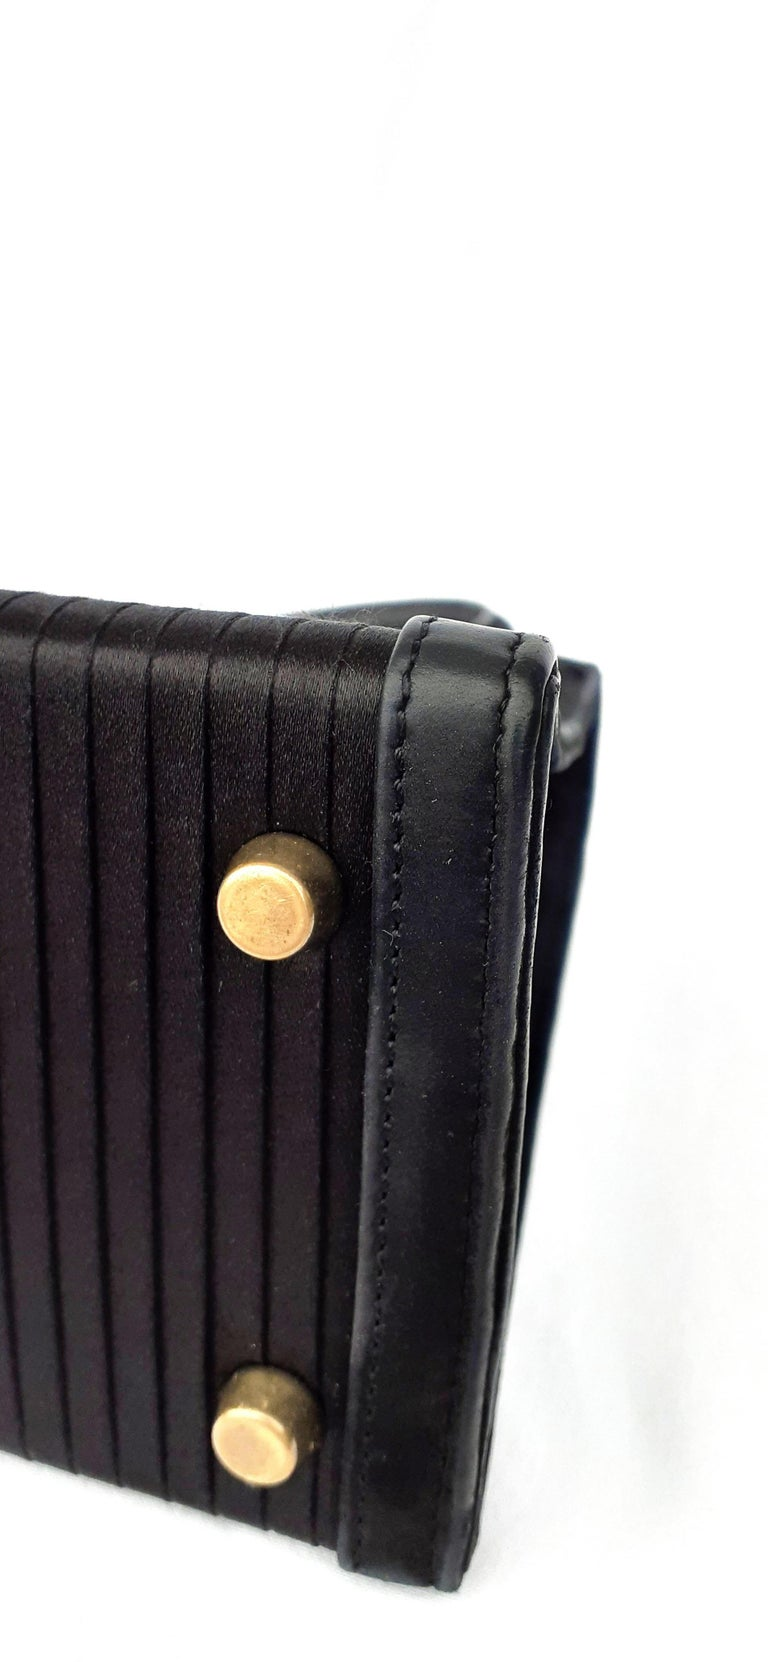 Exceptional Hermès Vintage Mini Kelly Sellier Bag Satin and Doblis Gold Hdw 20cm For Sale 4